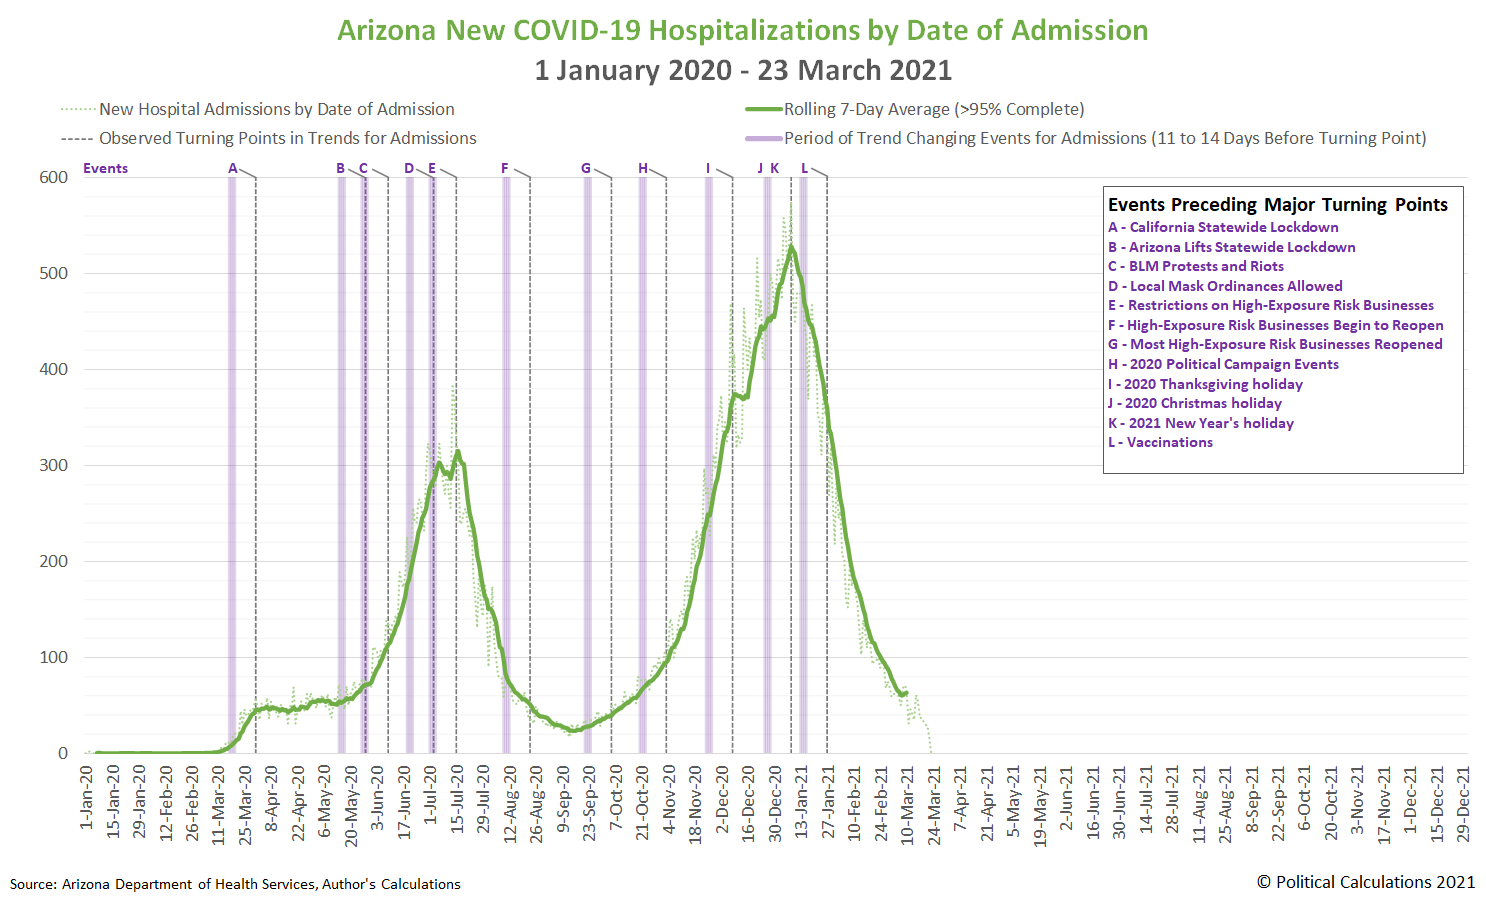 Arizona New COVID-19 Hospitalizations by Date of Admission, 1 January 2020 - 23 March 2021